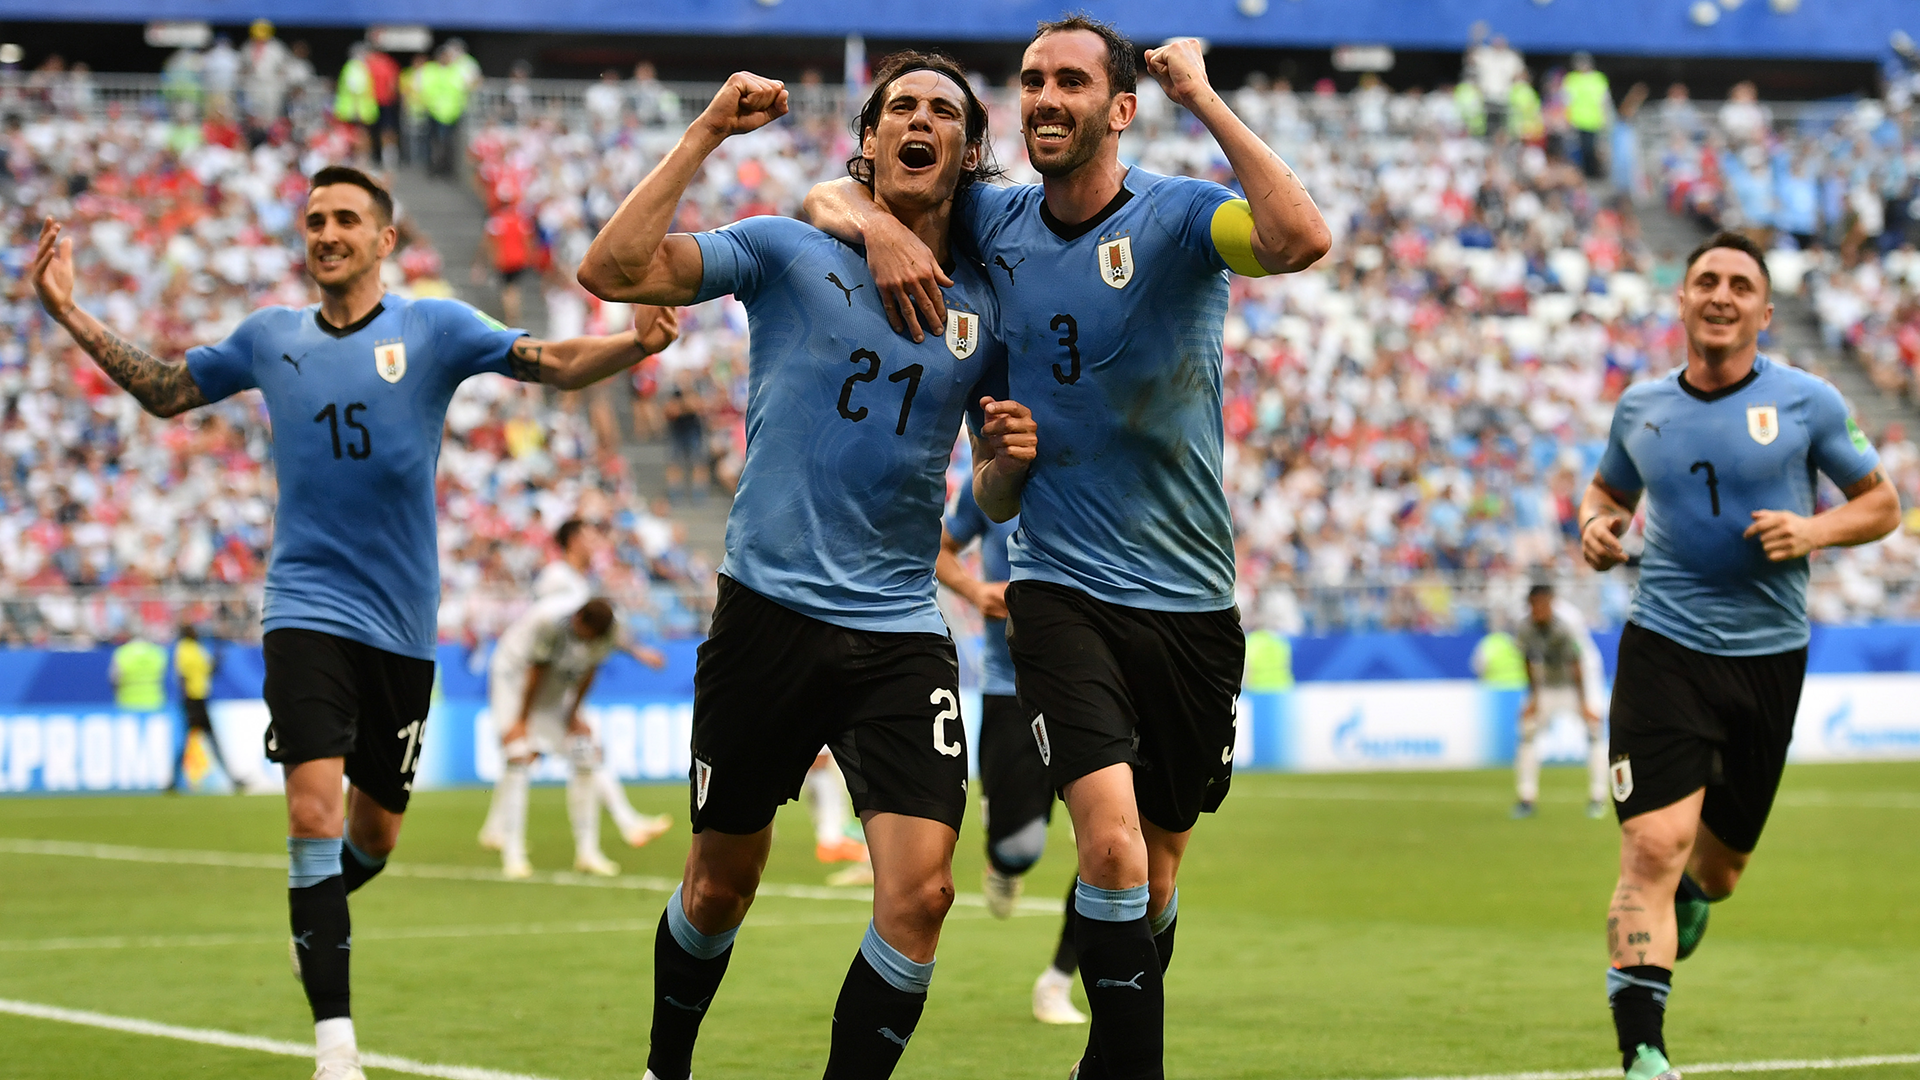 Edinson Cavani scores twice as Uruguay ousts Cristiano Ronaldo and Portugal